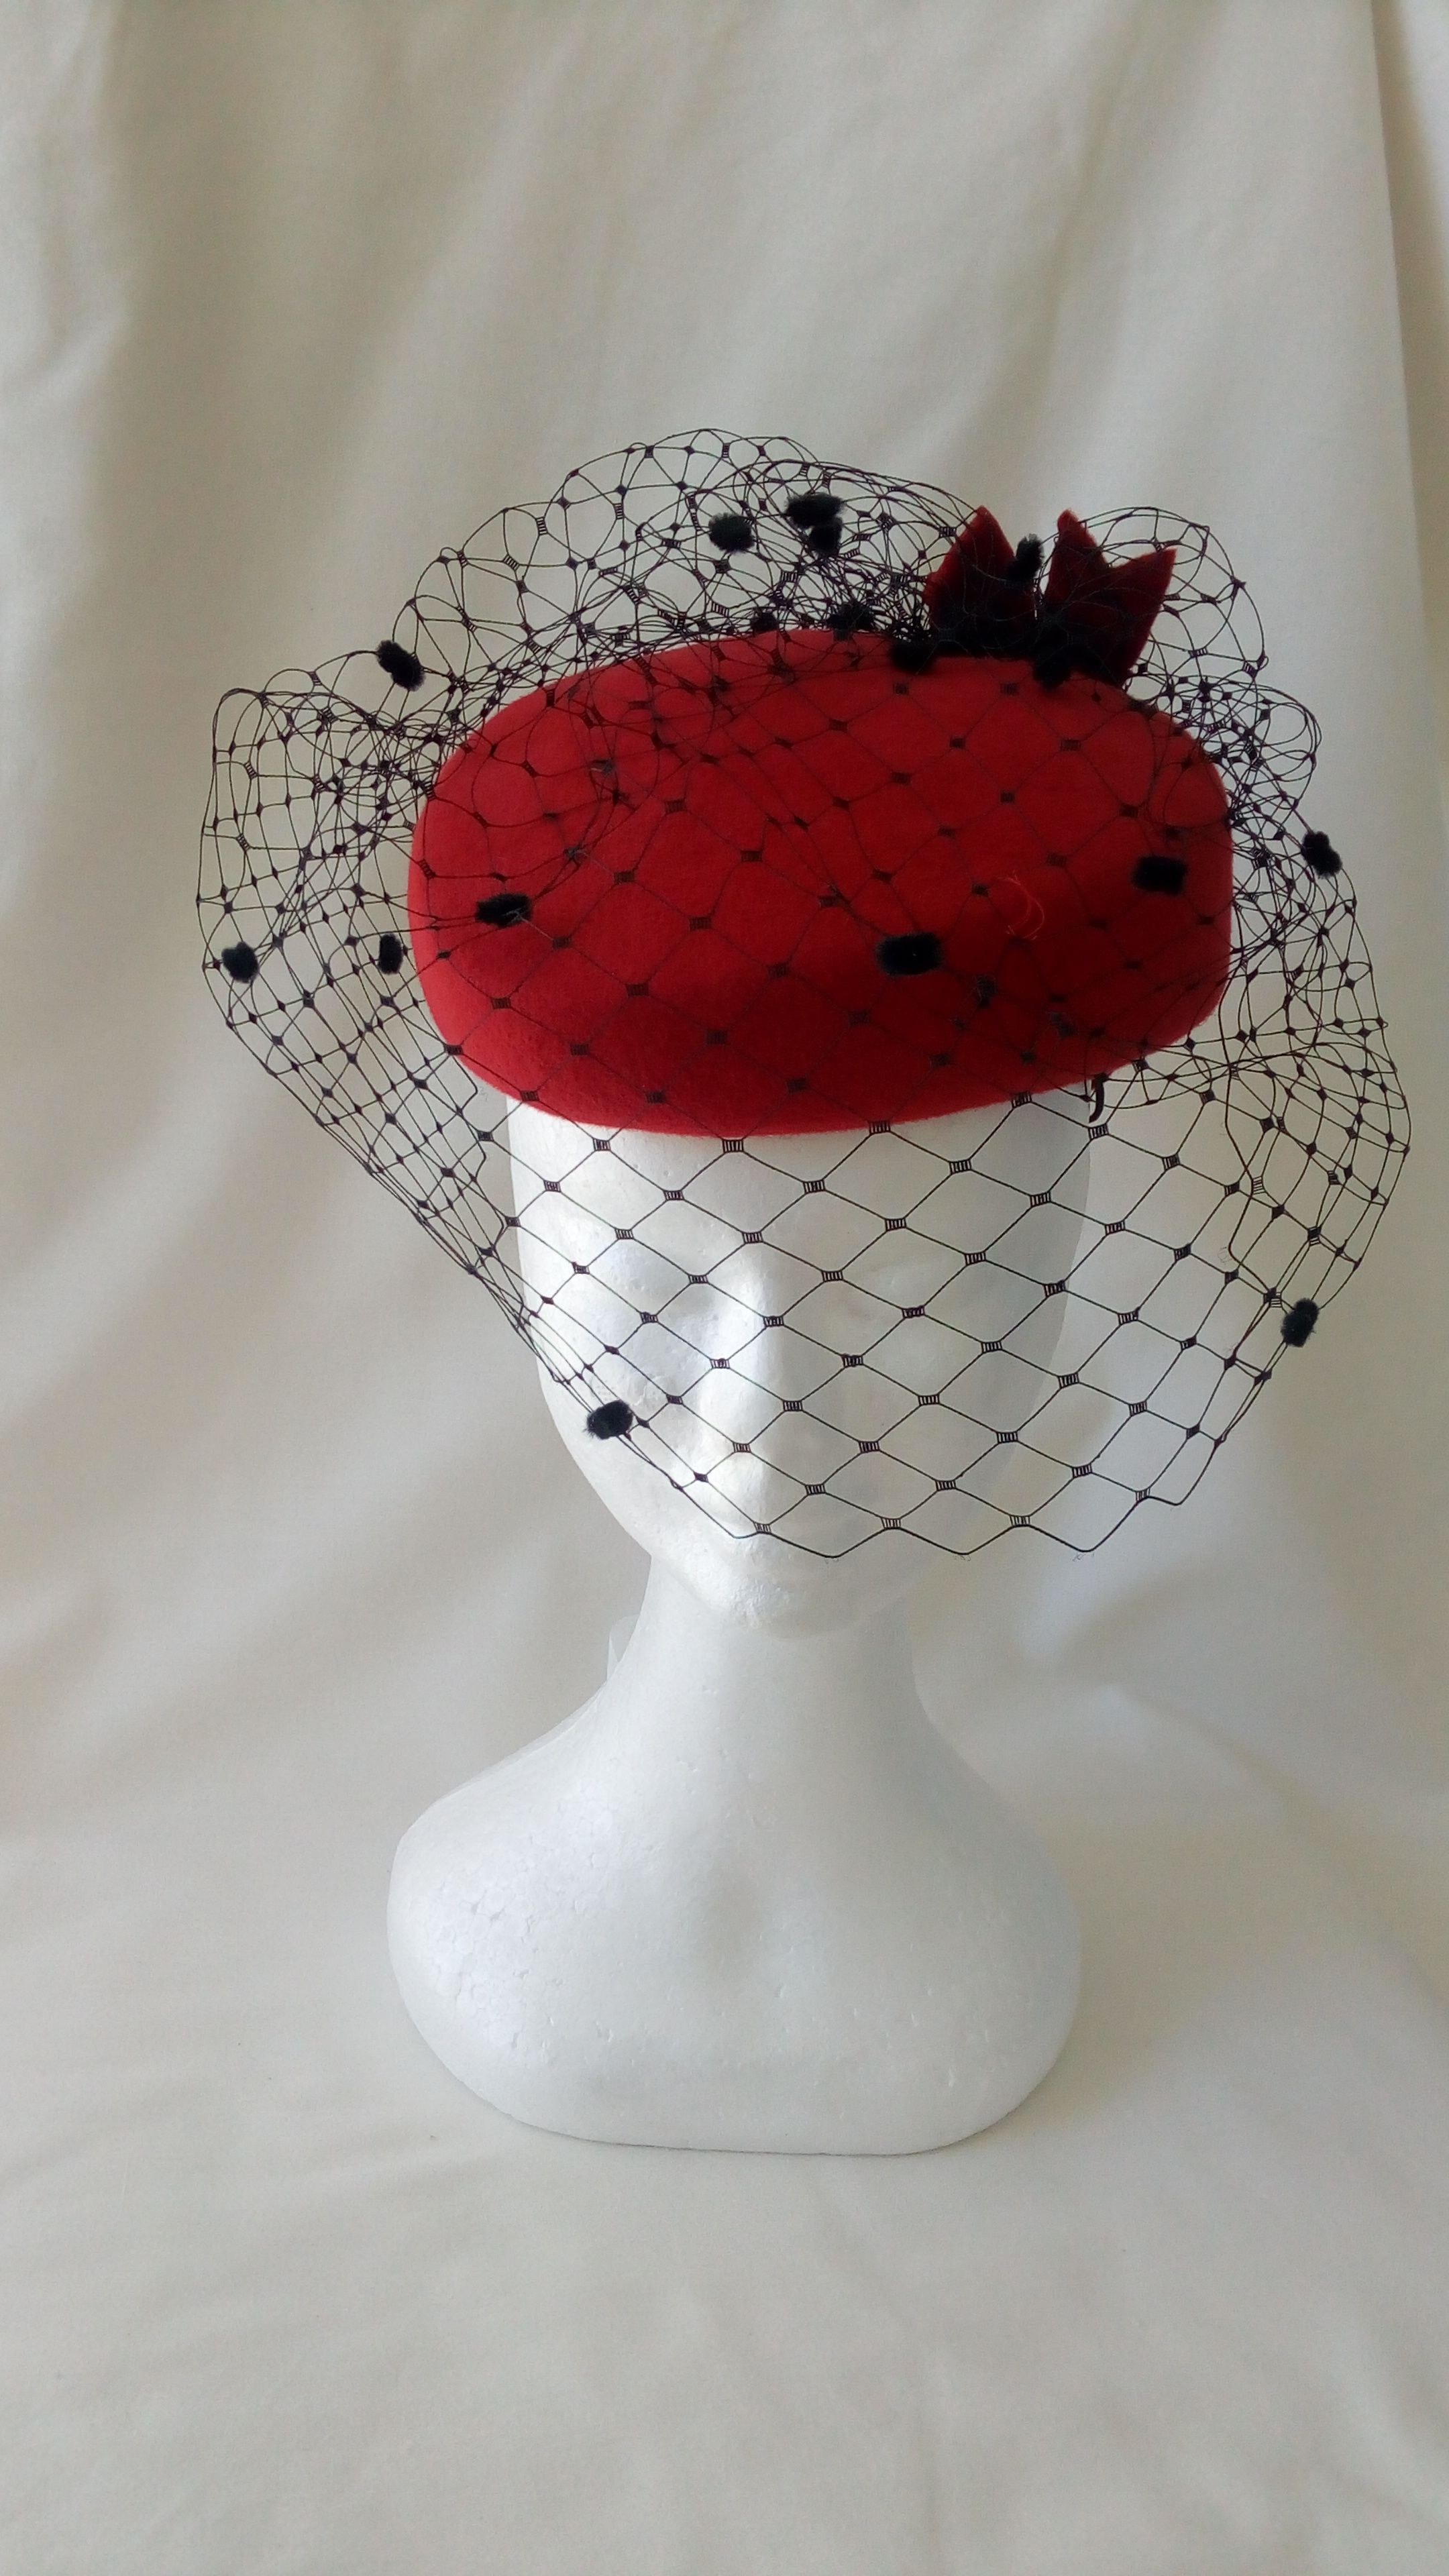 Red felt heart-shaped hat with black veiling. Visit. February 2019 eea772507197